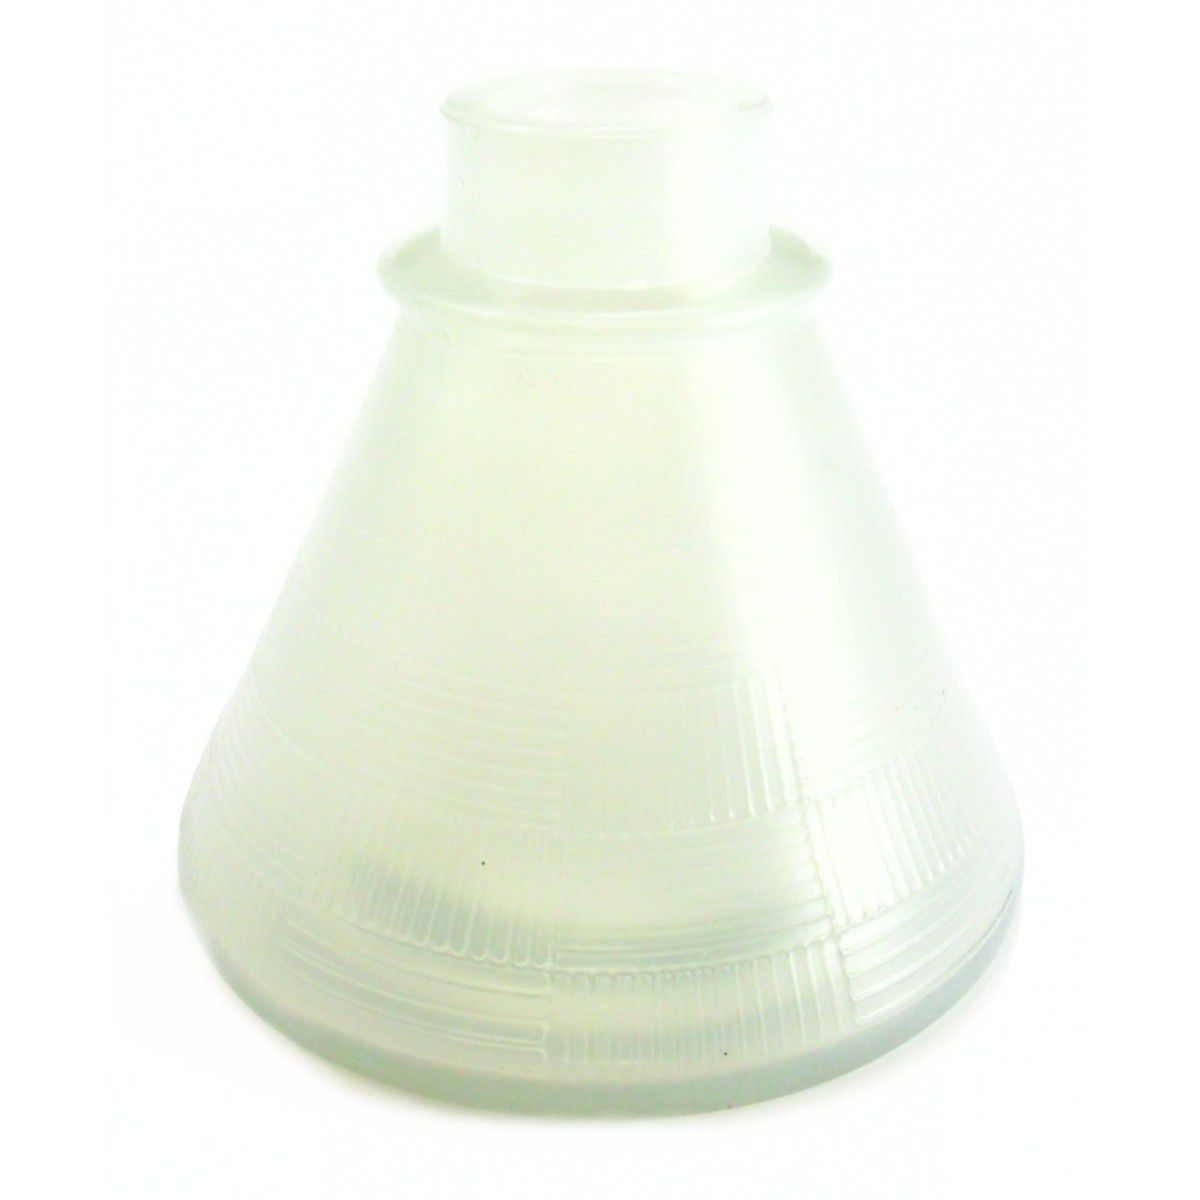 Vaso/Base para narguile base larga encaixe macho, 11cm alt. P/stems Judith, Triton, Amazon, Mya, etc Branco (pequena def